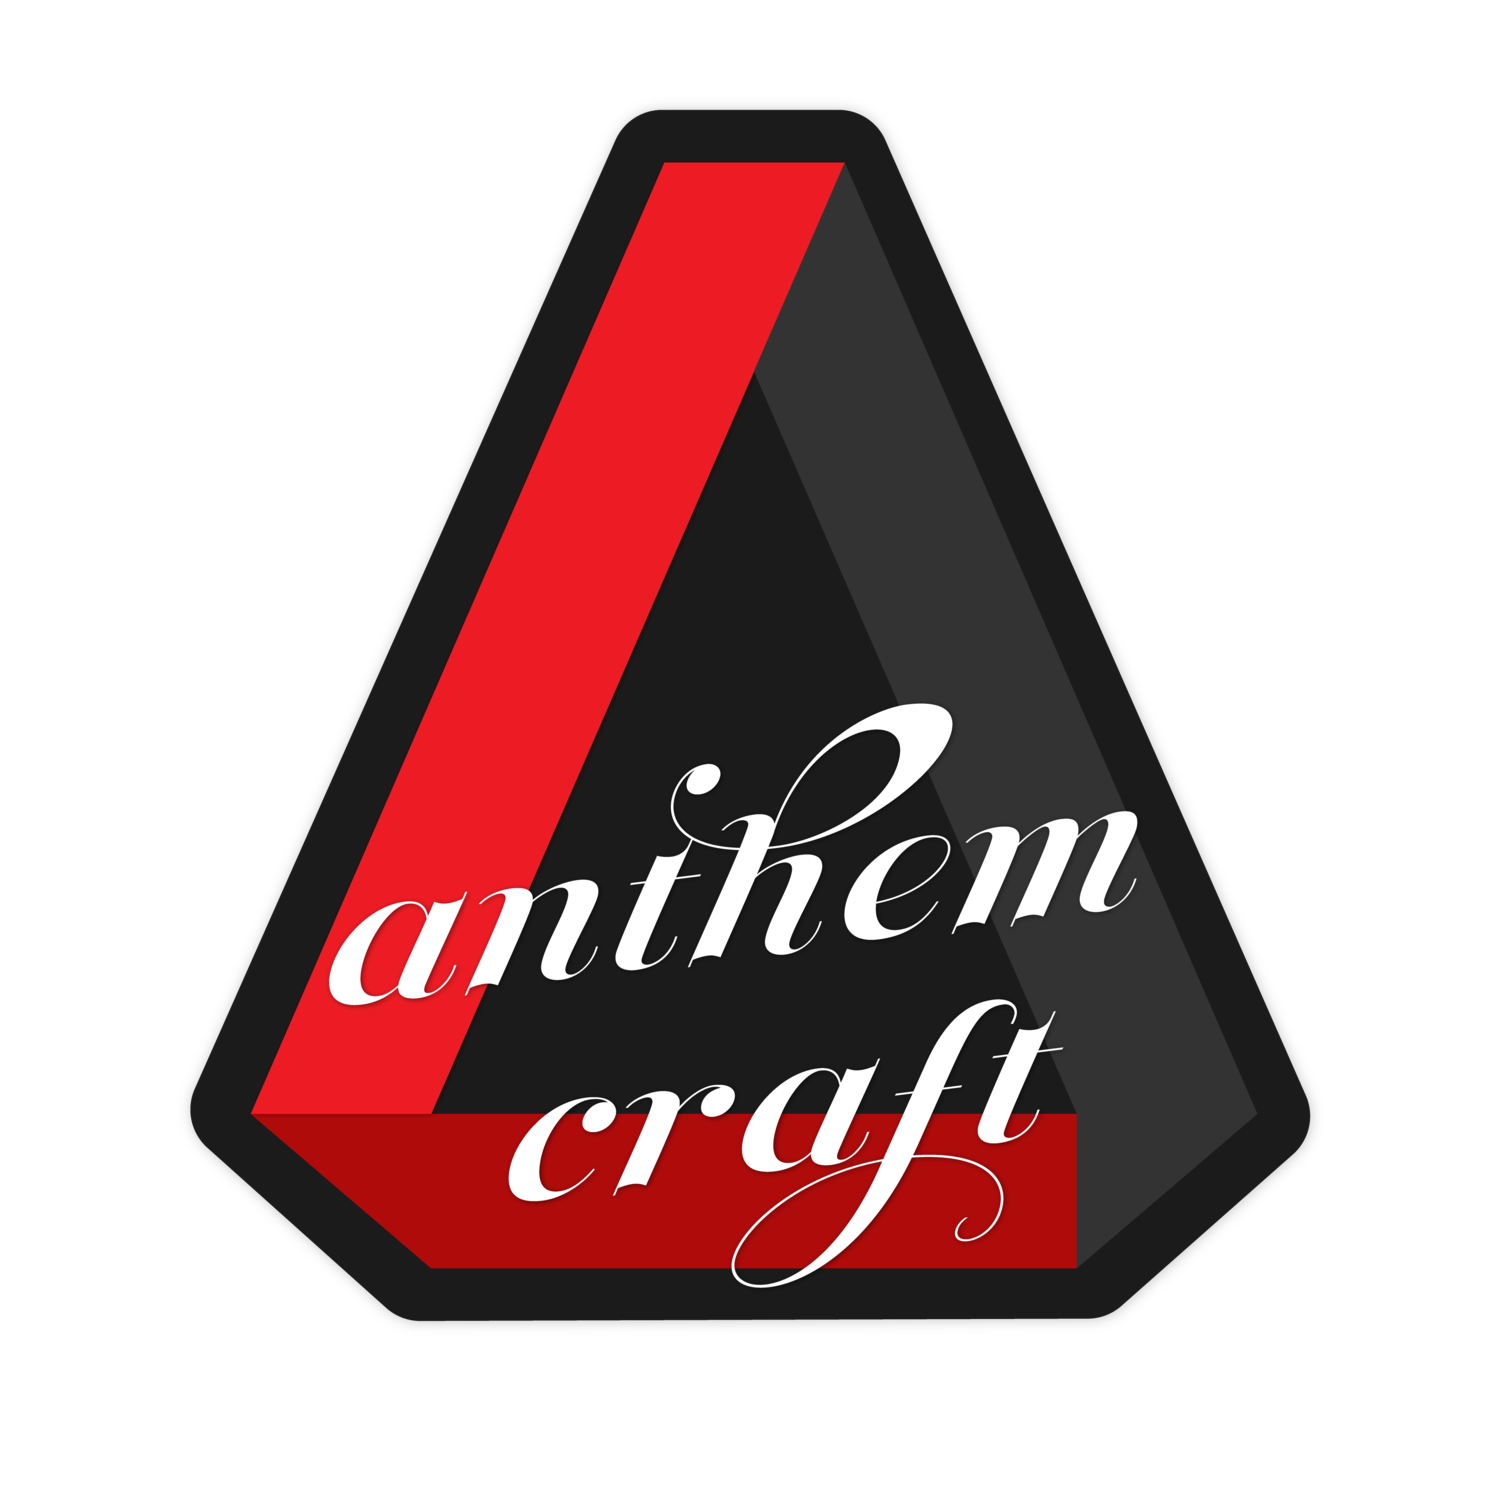 Anthem Craft Co.